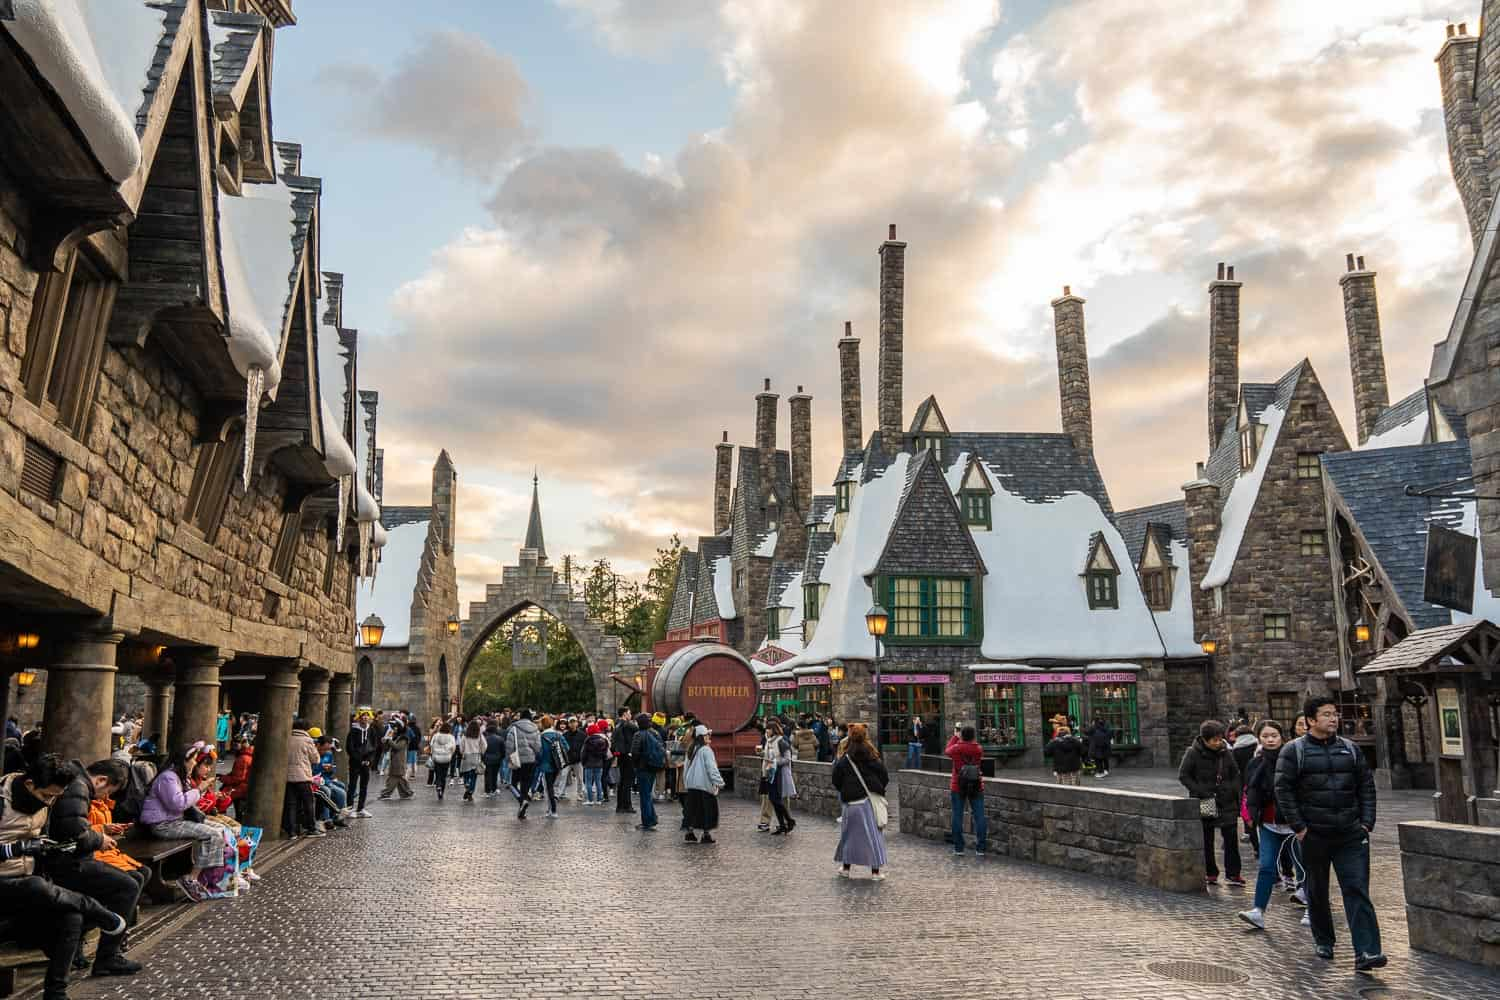 Hogsmeade village at sunset at The Wizarding World of Harry Potter at Universal Studios Japan in Osaka